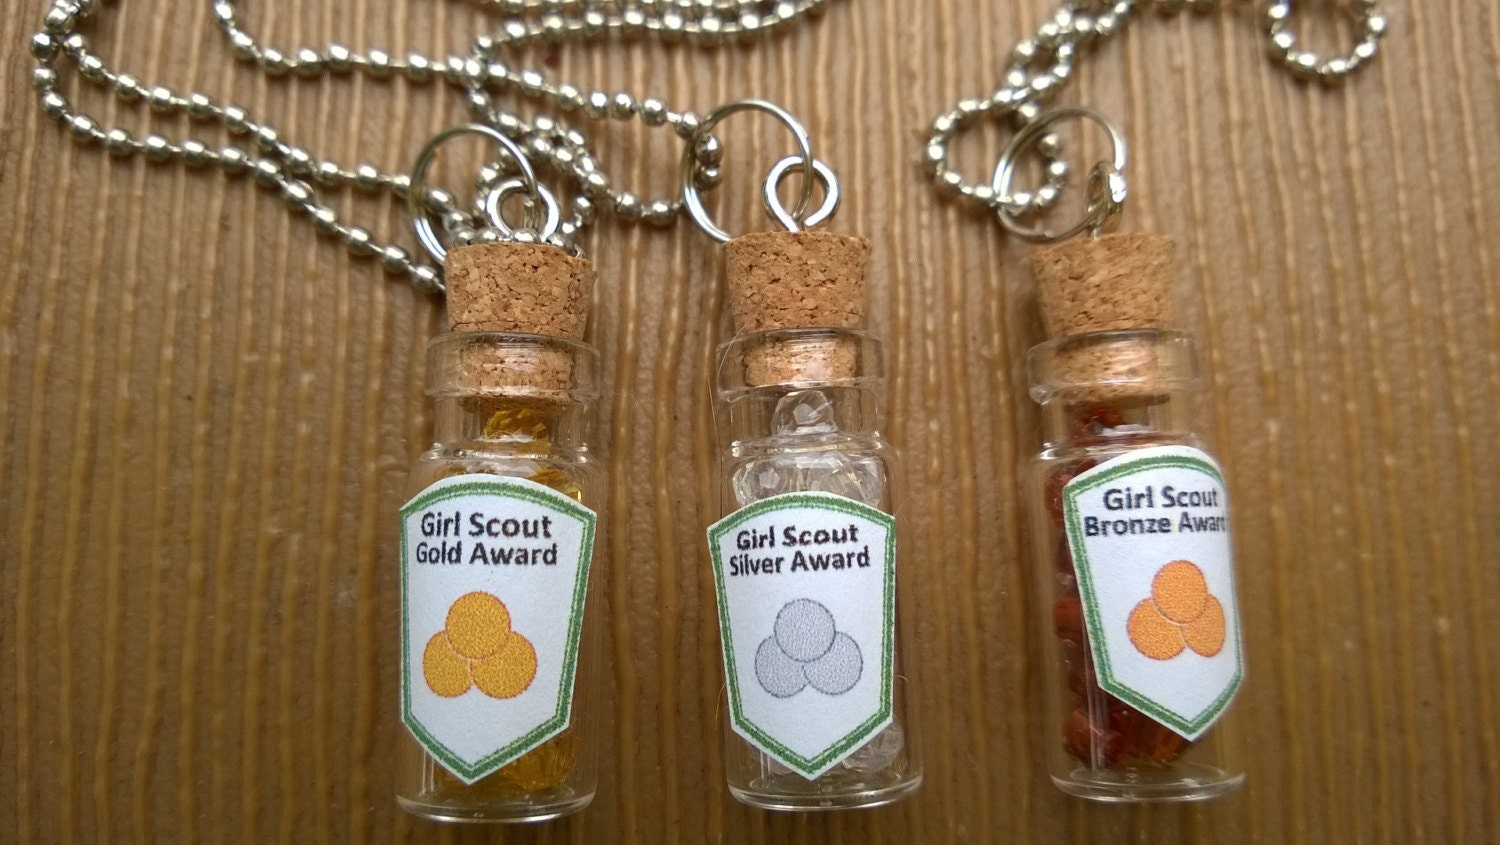 Girl scout scrapbook ideas - Set Of 10 Girl Scout Bronze Silver Or Gold Award Swaps Or Necklaces Craft Kits Or Ready Made Items